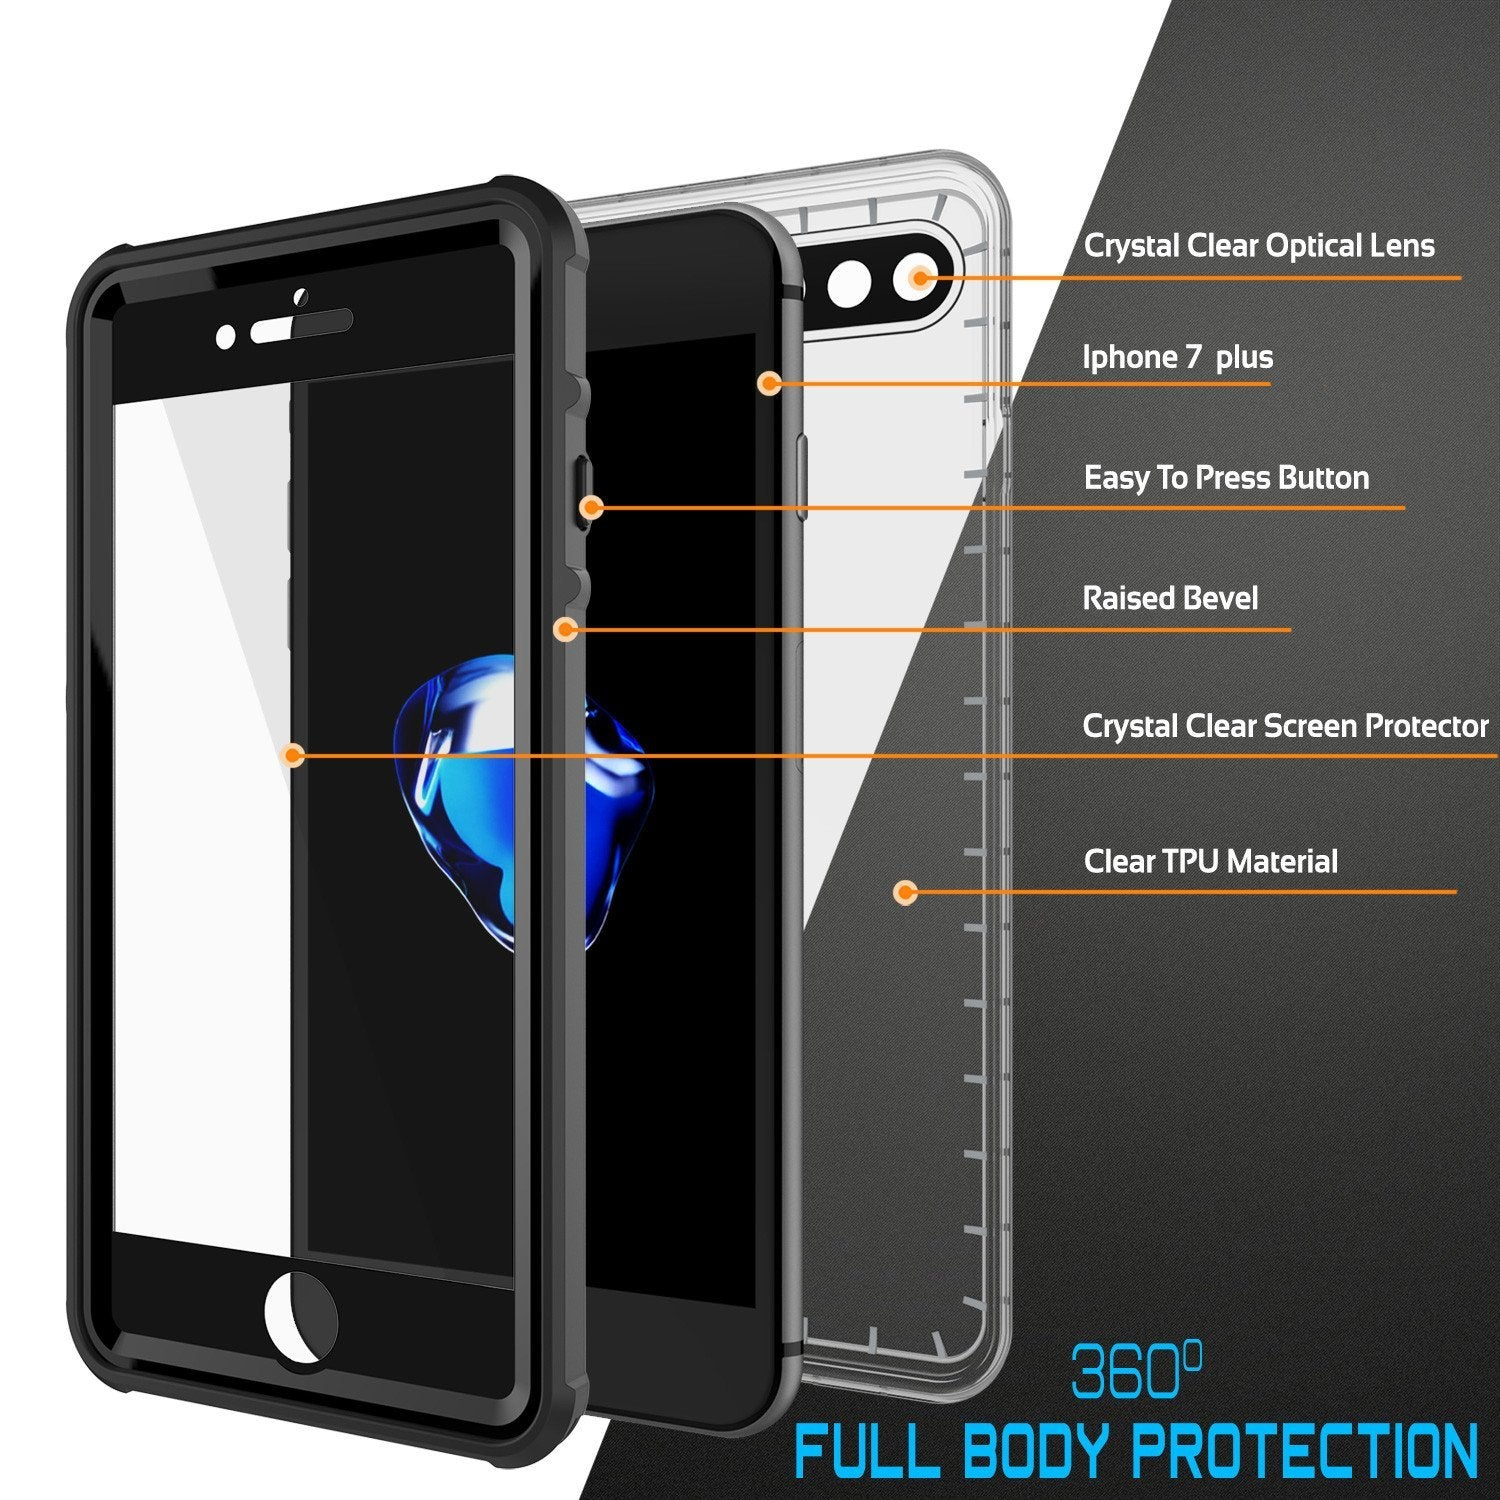 iPhone 8+ Plus Waterproof Case, PUNKcase CRYSTAL Black W/ Attached Screen Protector  | Warranty - PunkCase NZ